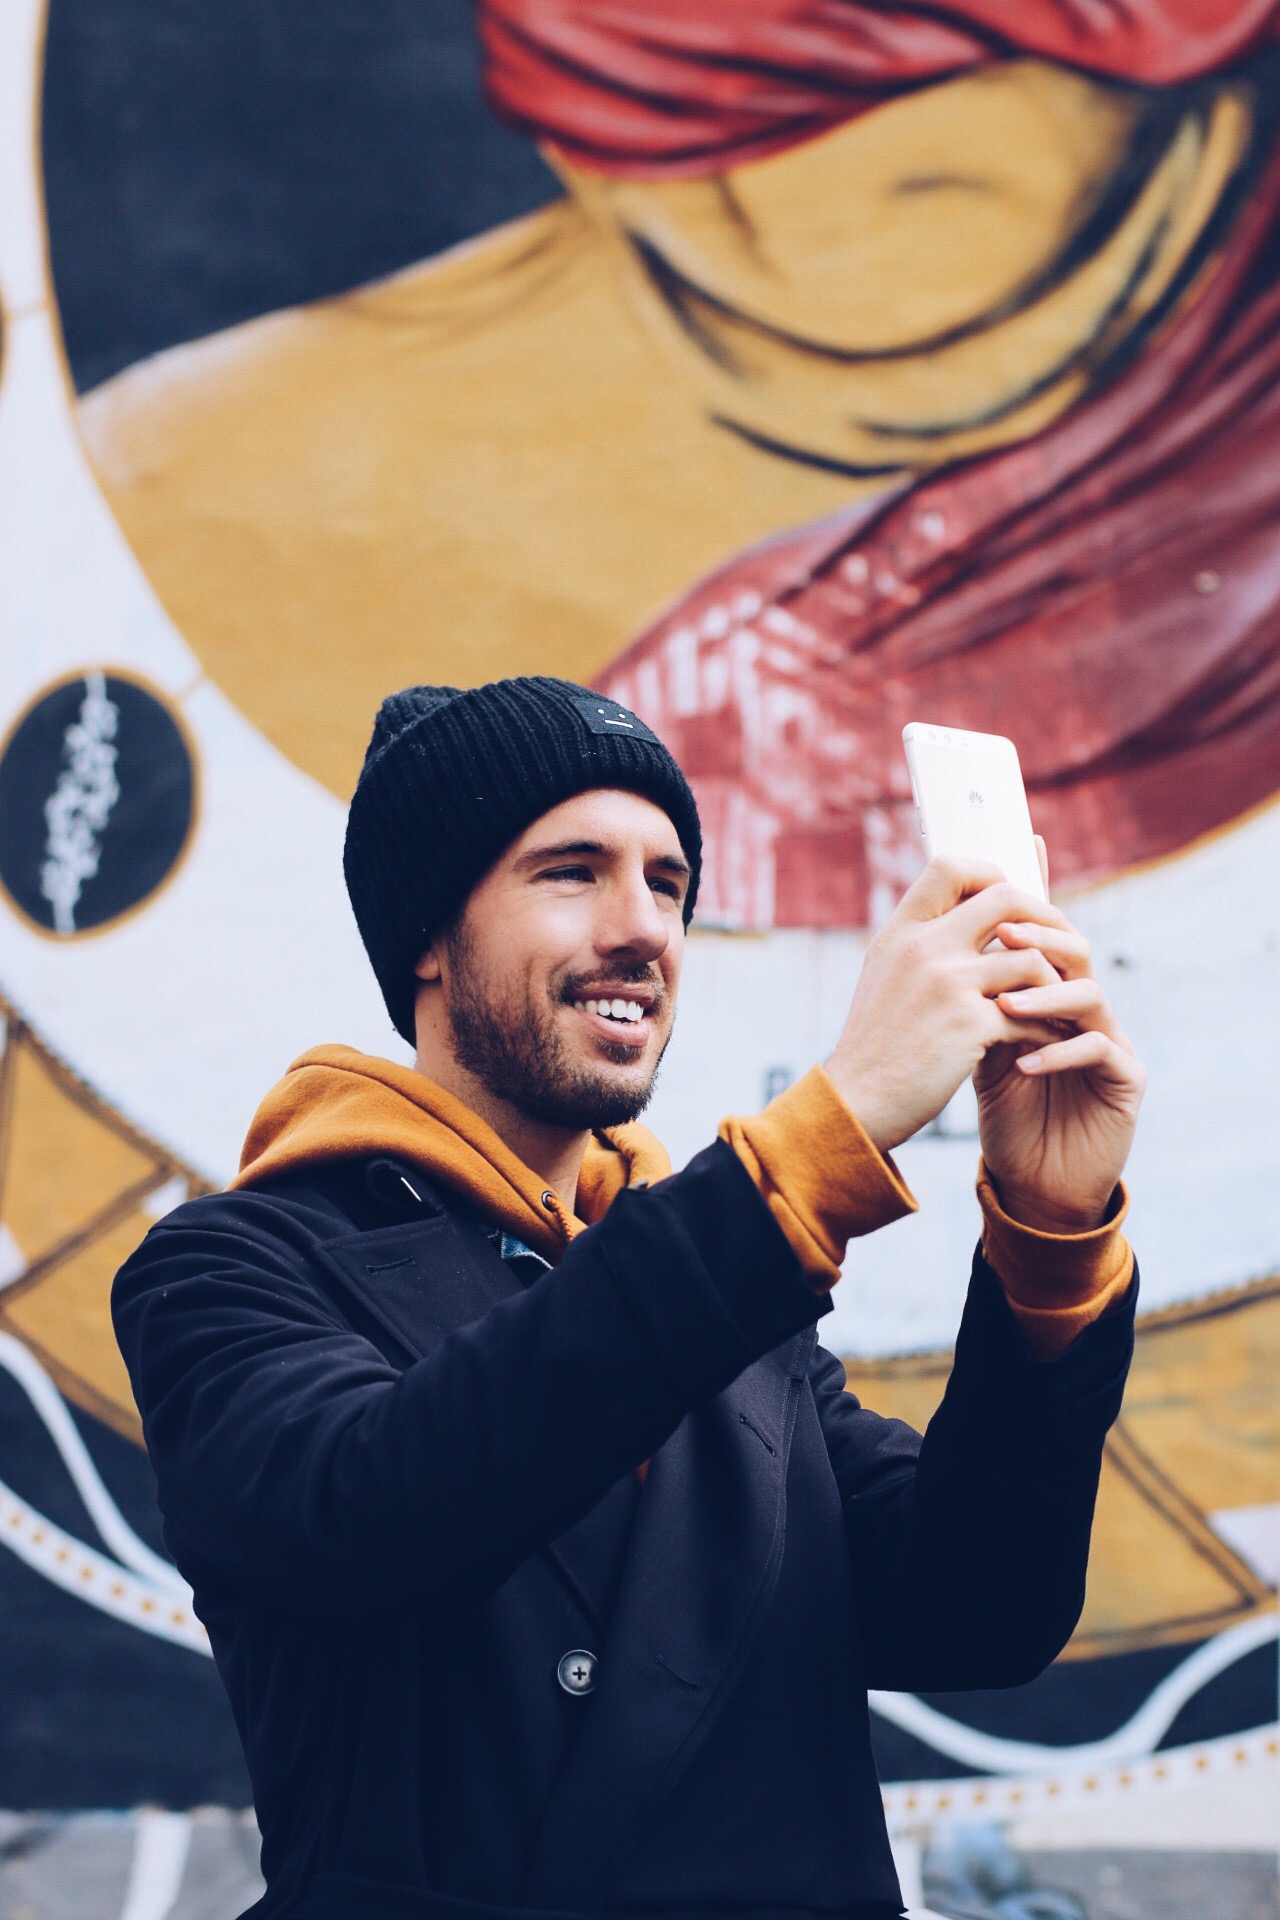 Processed with VSCOcam with a5 preset